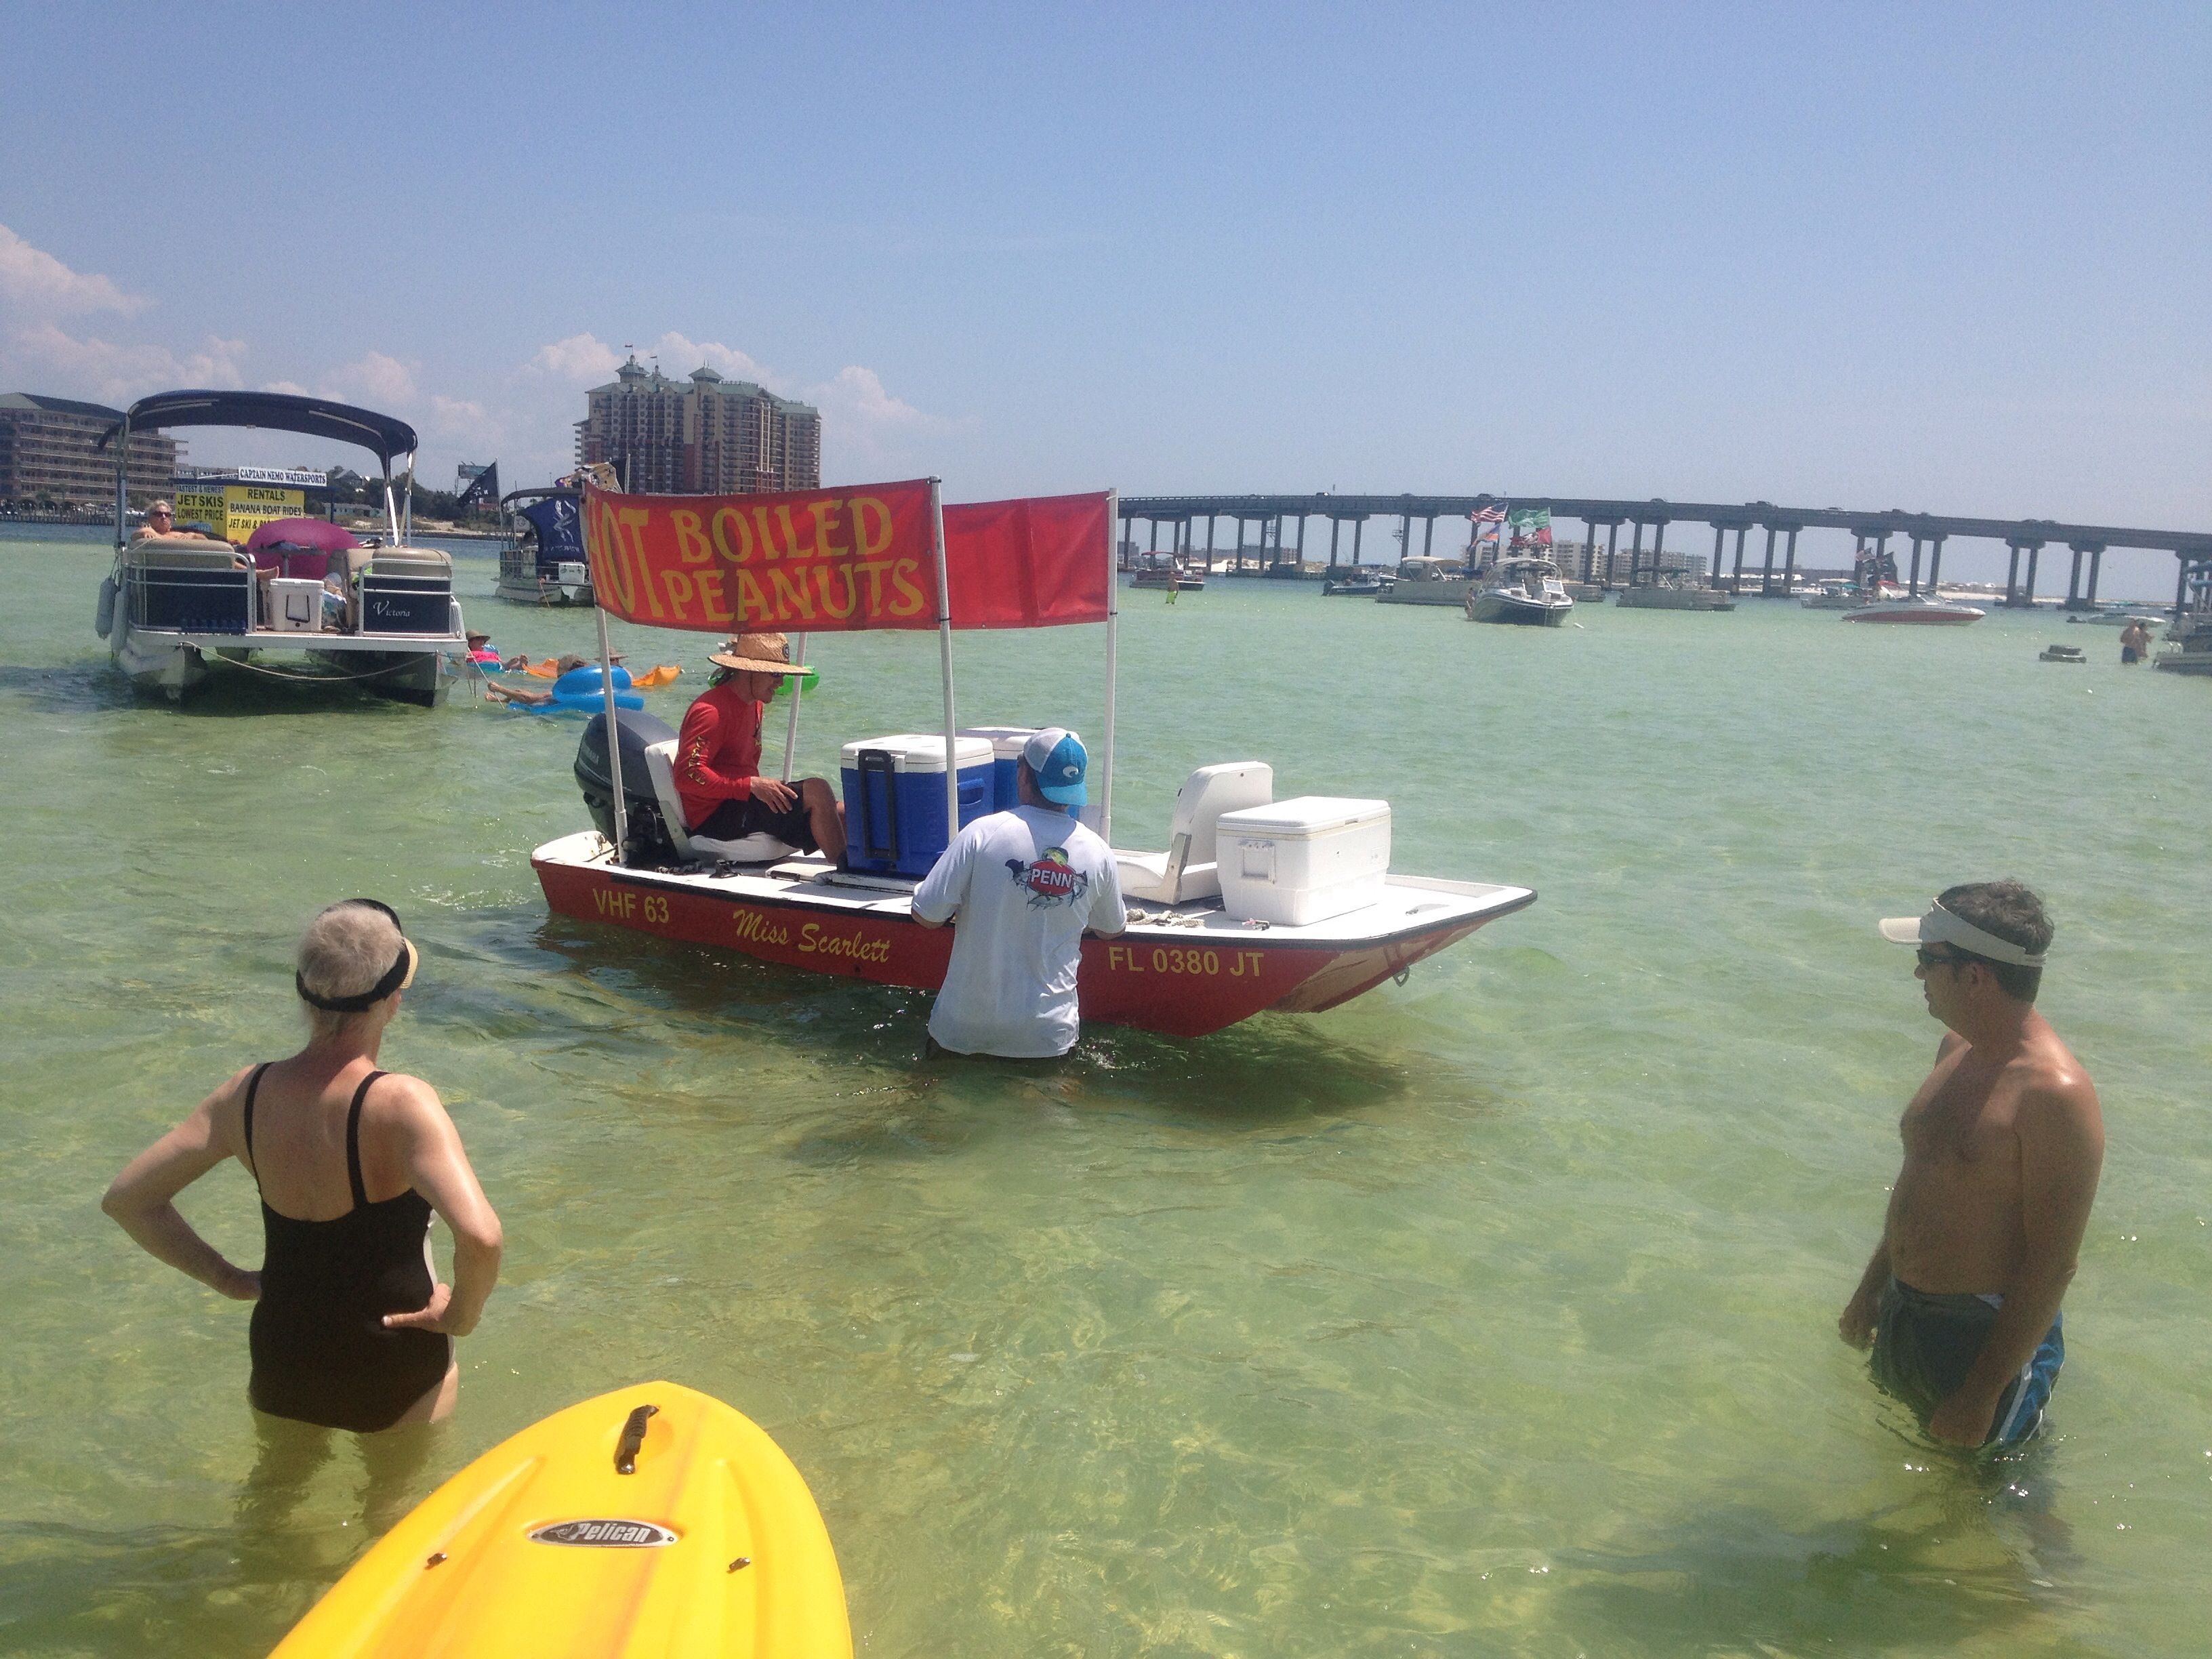 Boiled Peanut Food Vendor Comes To You By Boat On Crab Island